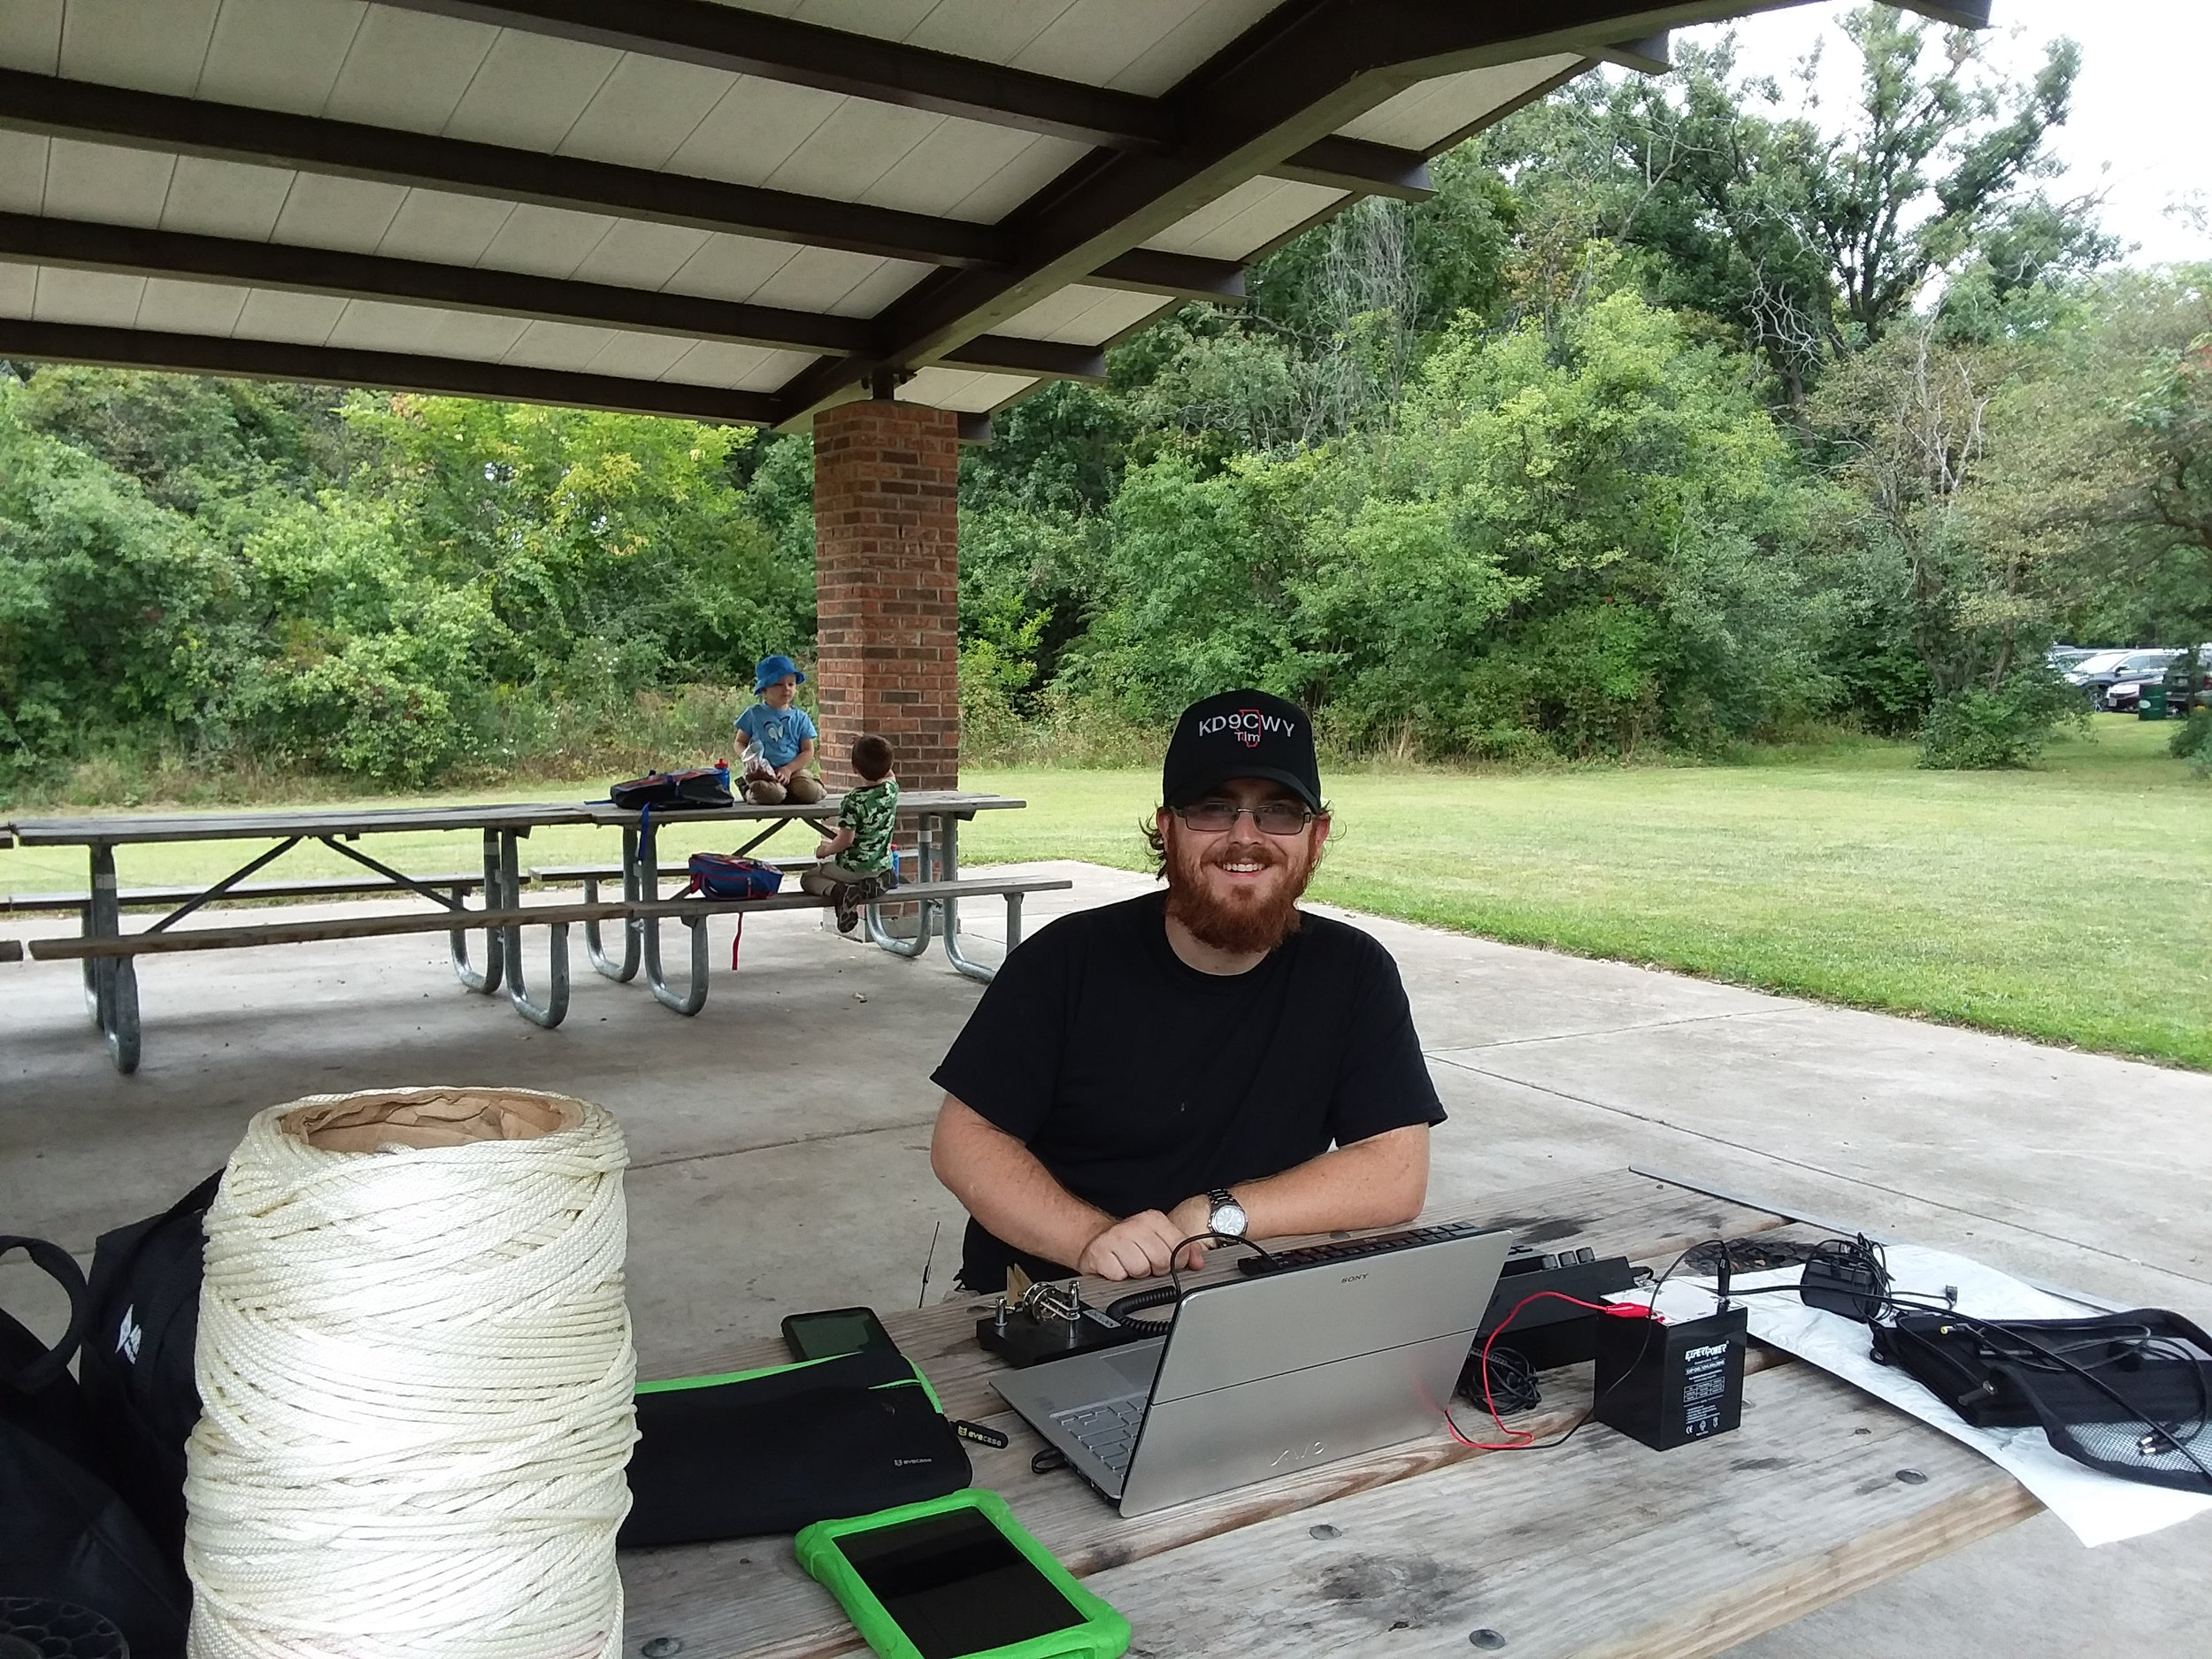 """Tim (KD9CWY) with his set-up, and his sons Archer and Hunter (the future """"Super Hams"""") in the background."""